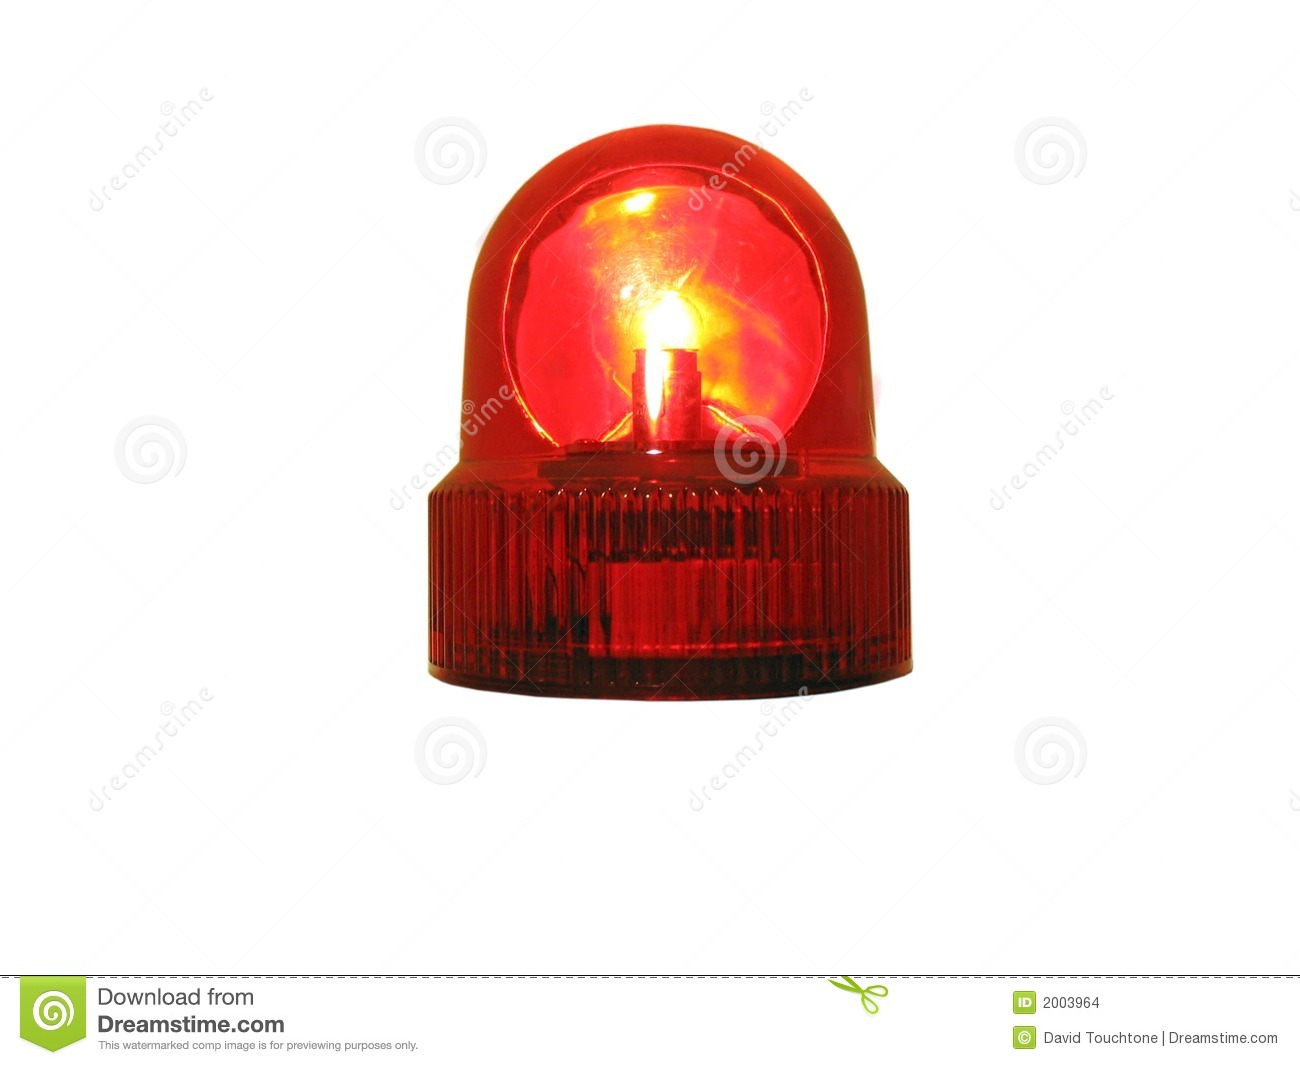 Clipart flashing red light.